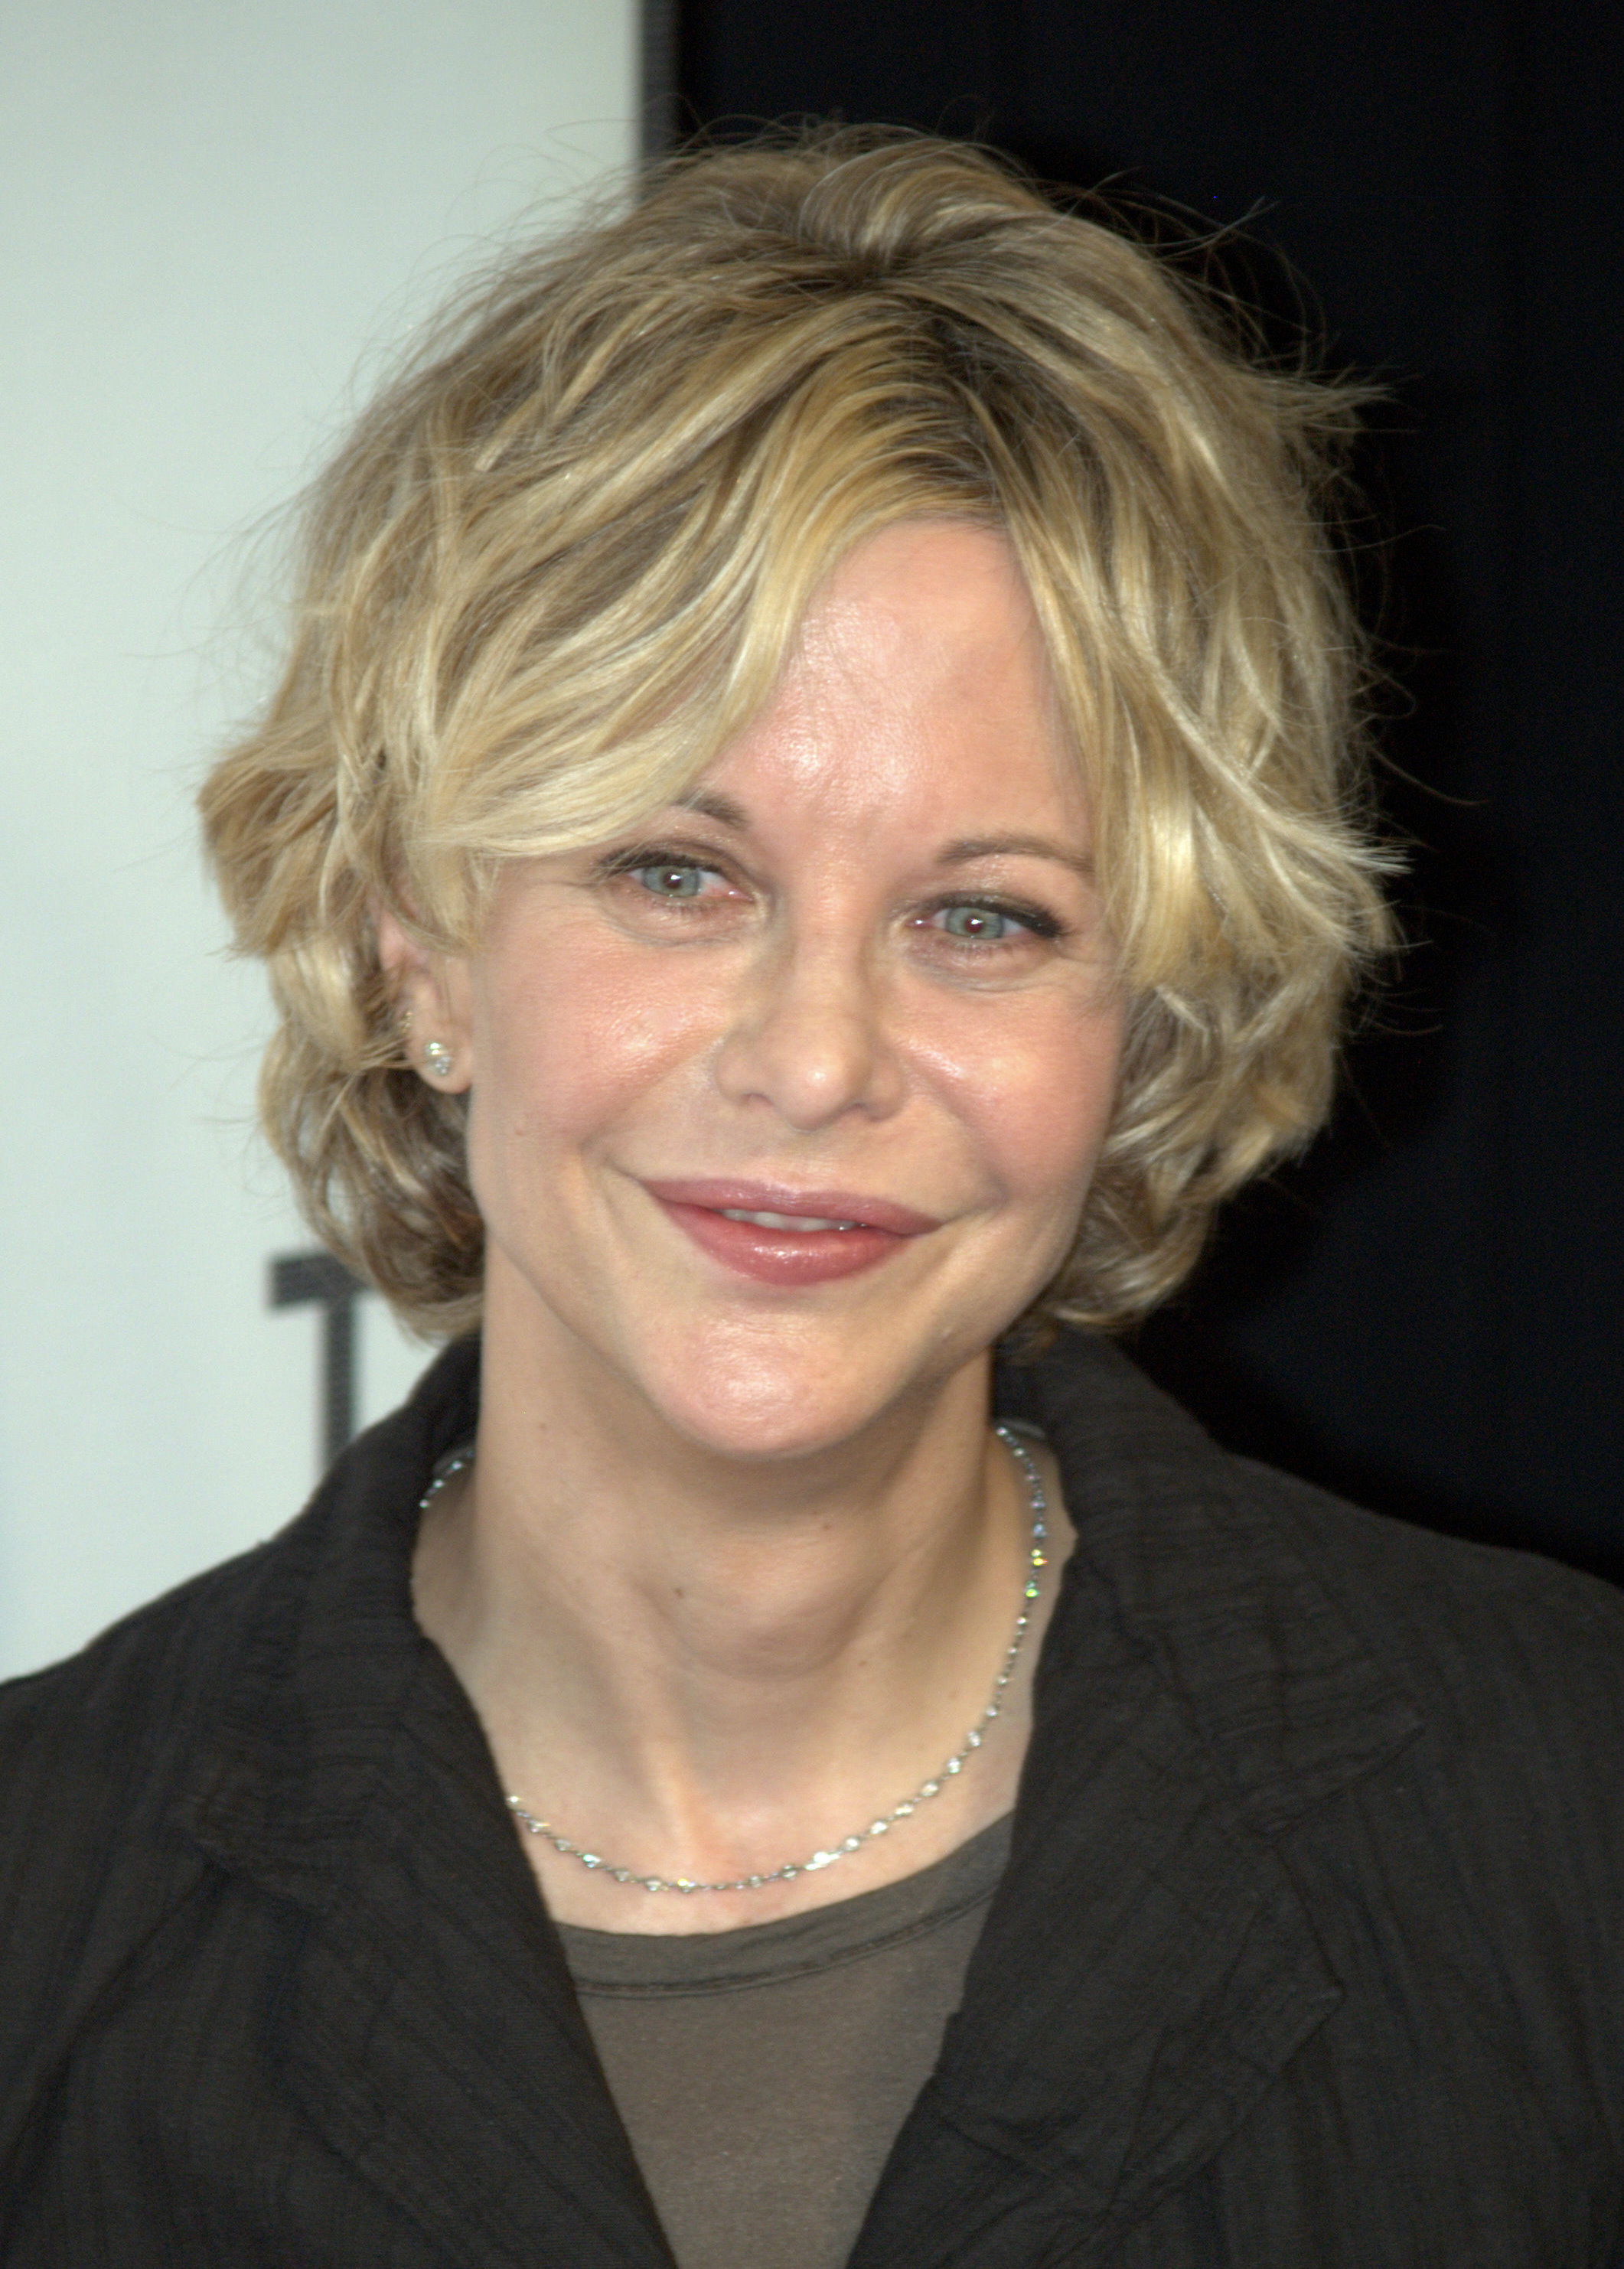 Meg Ryan Plastic Surgery Before And After Photos Lip